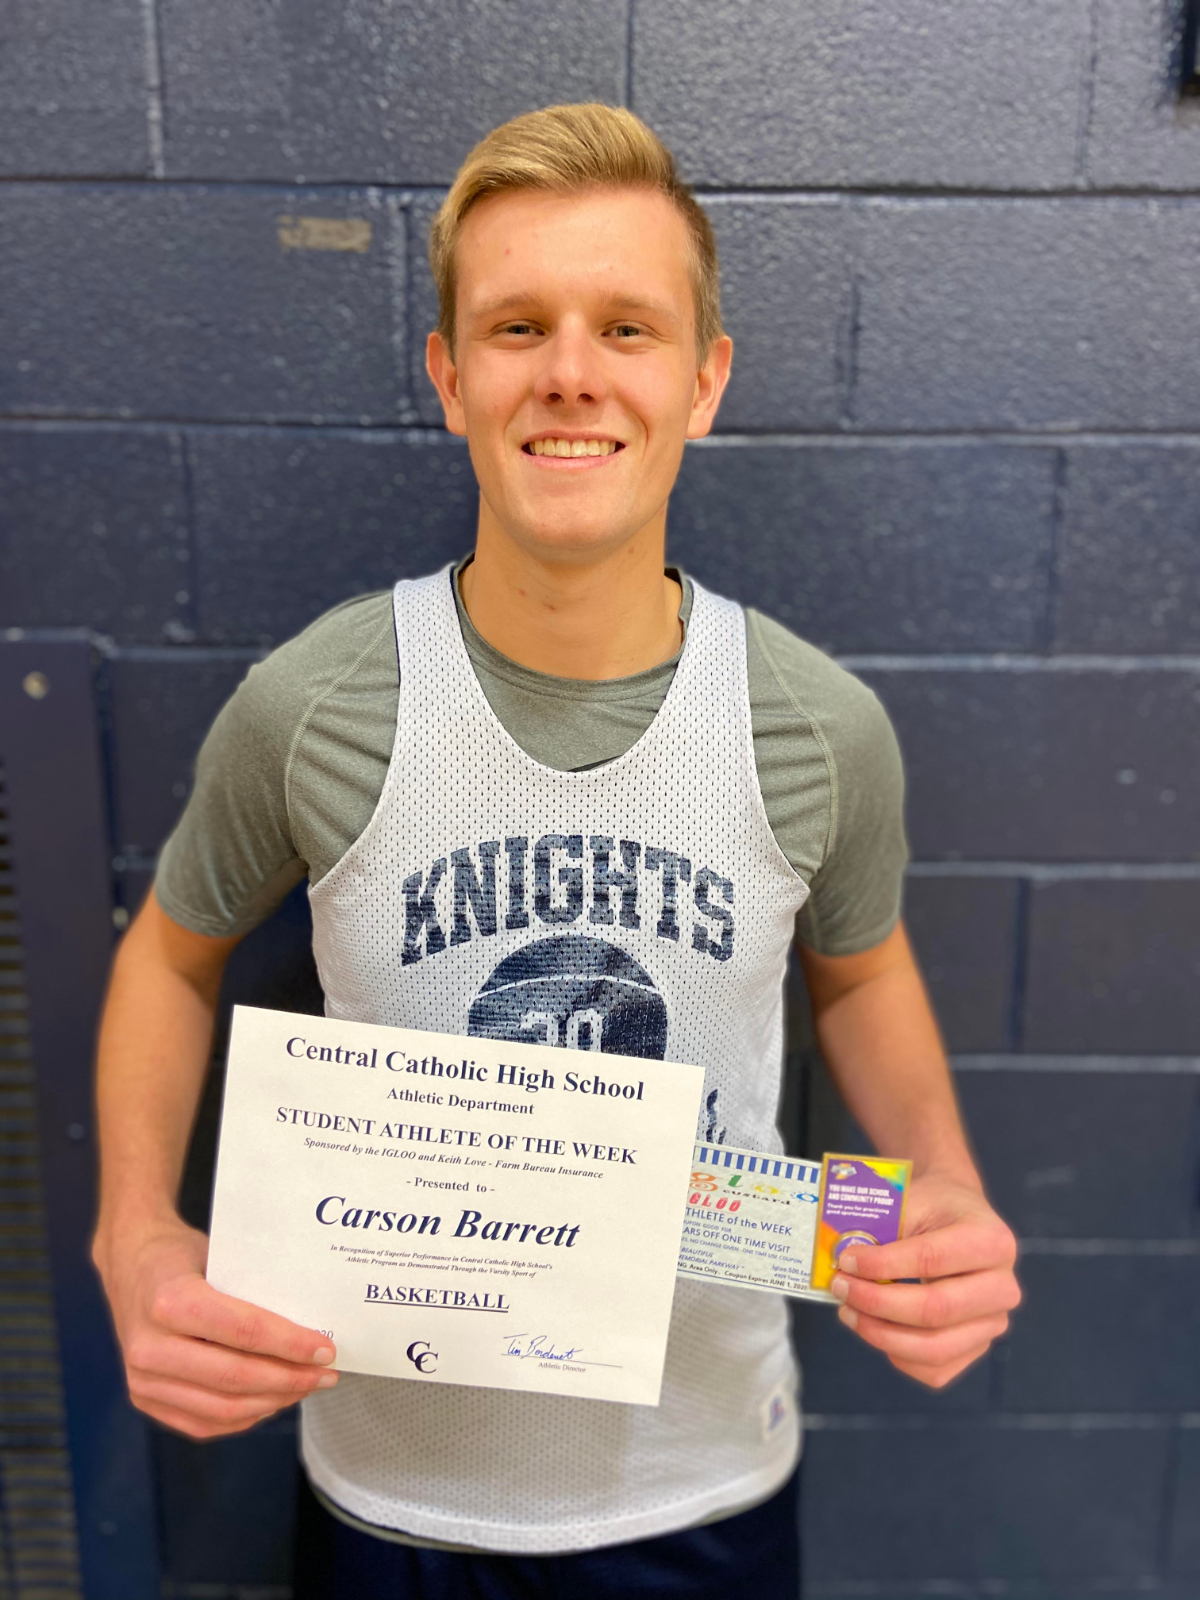 Student Athlete of the Week